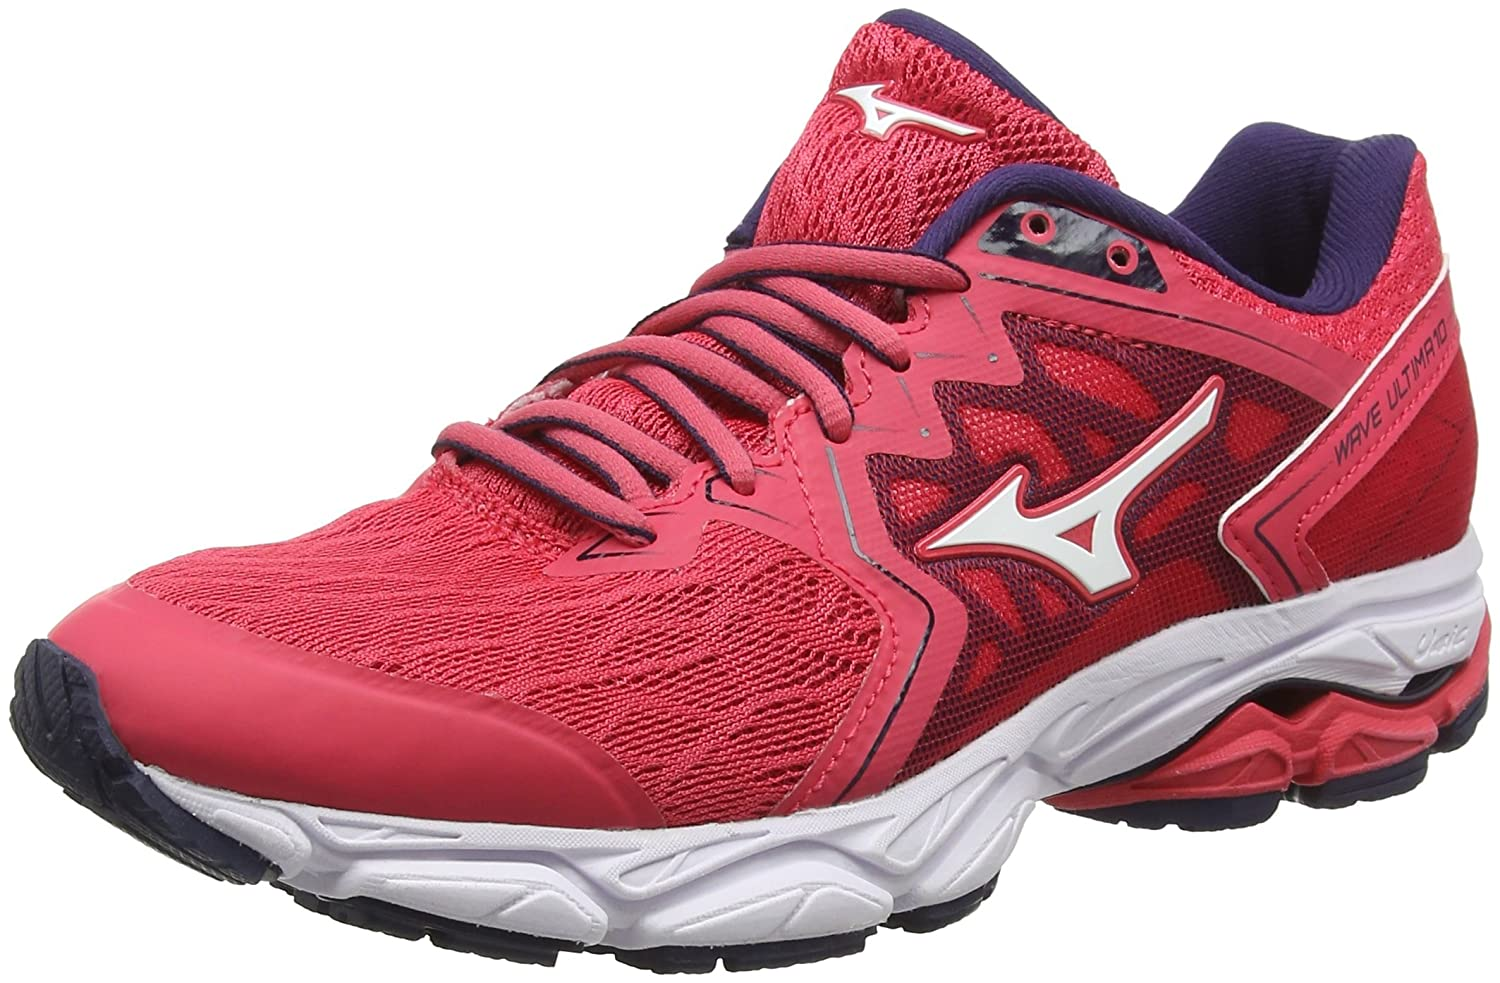 Mizuno Wave Ultima 10, Zapatillas de Running para Mujer 39 EU|Rojo (Teaberry/White/Evening Blue 02)